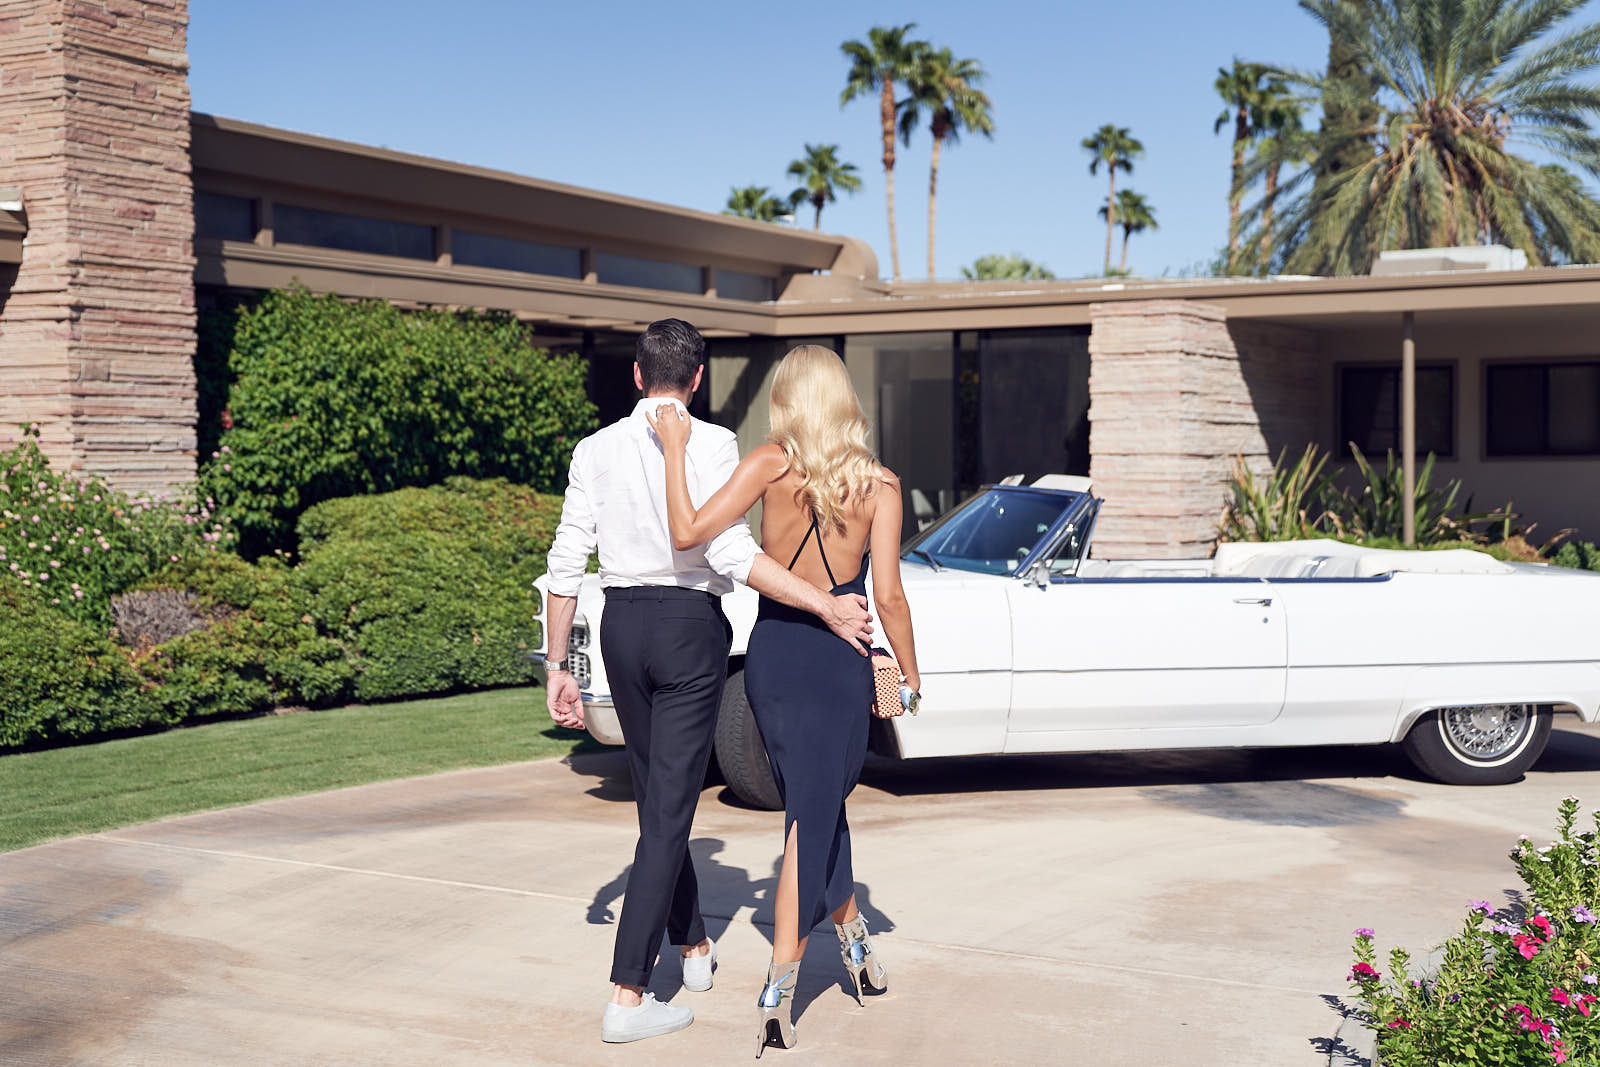 Saasha Burns & Sammy Leethem on their way to BEAR launch Frank Sinatra's House Palm Springs by Lost In Love Photography